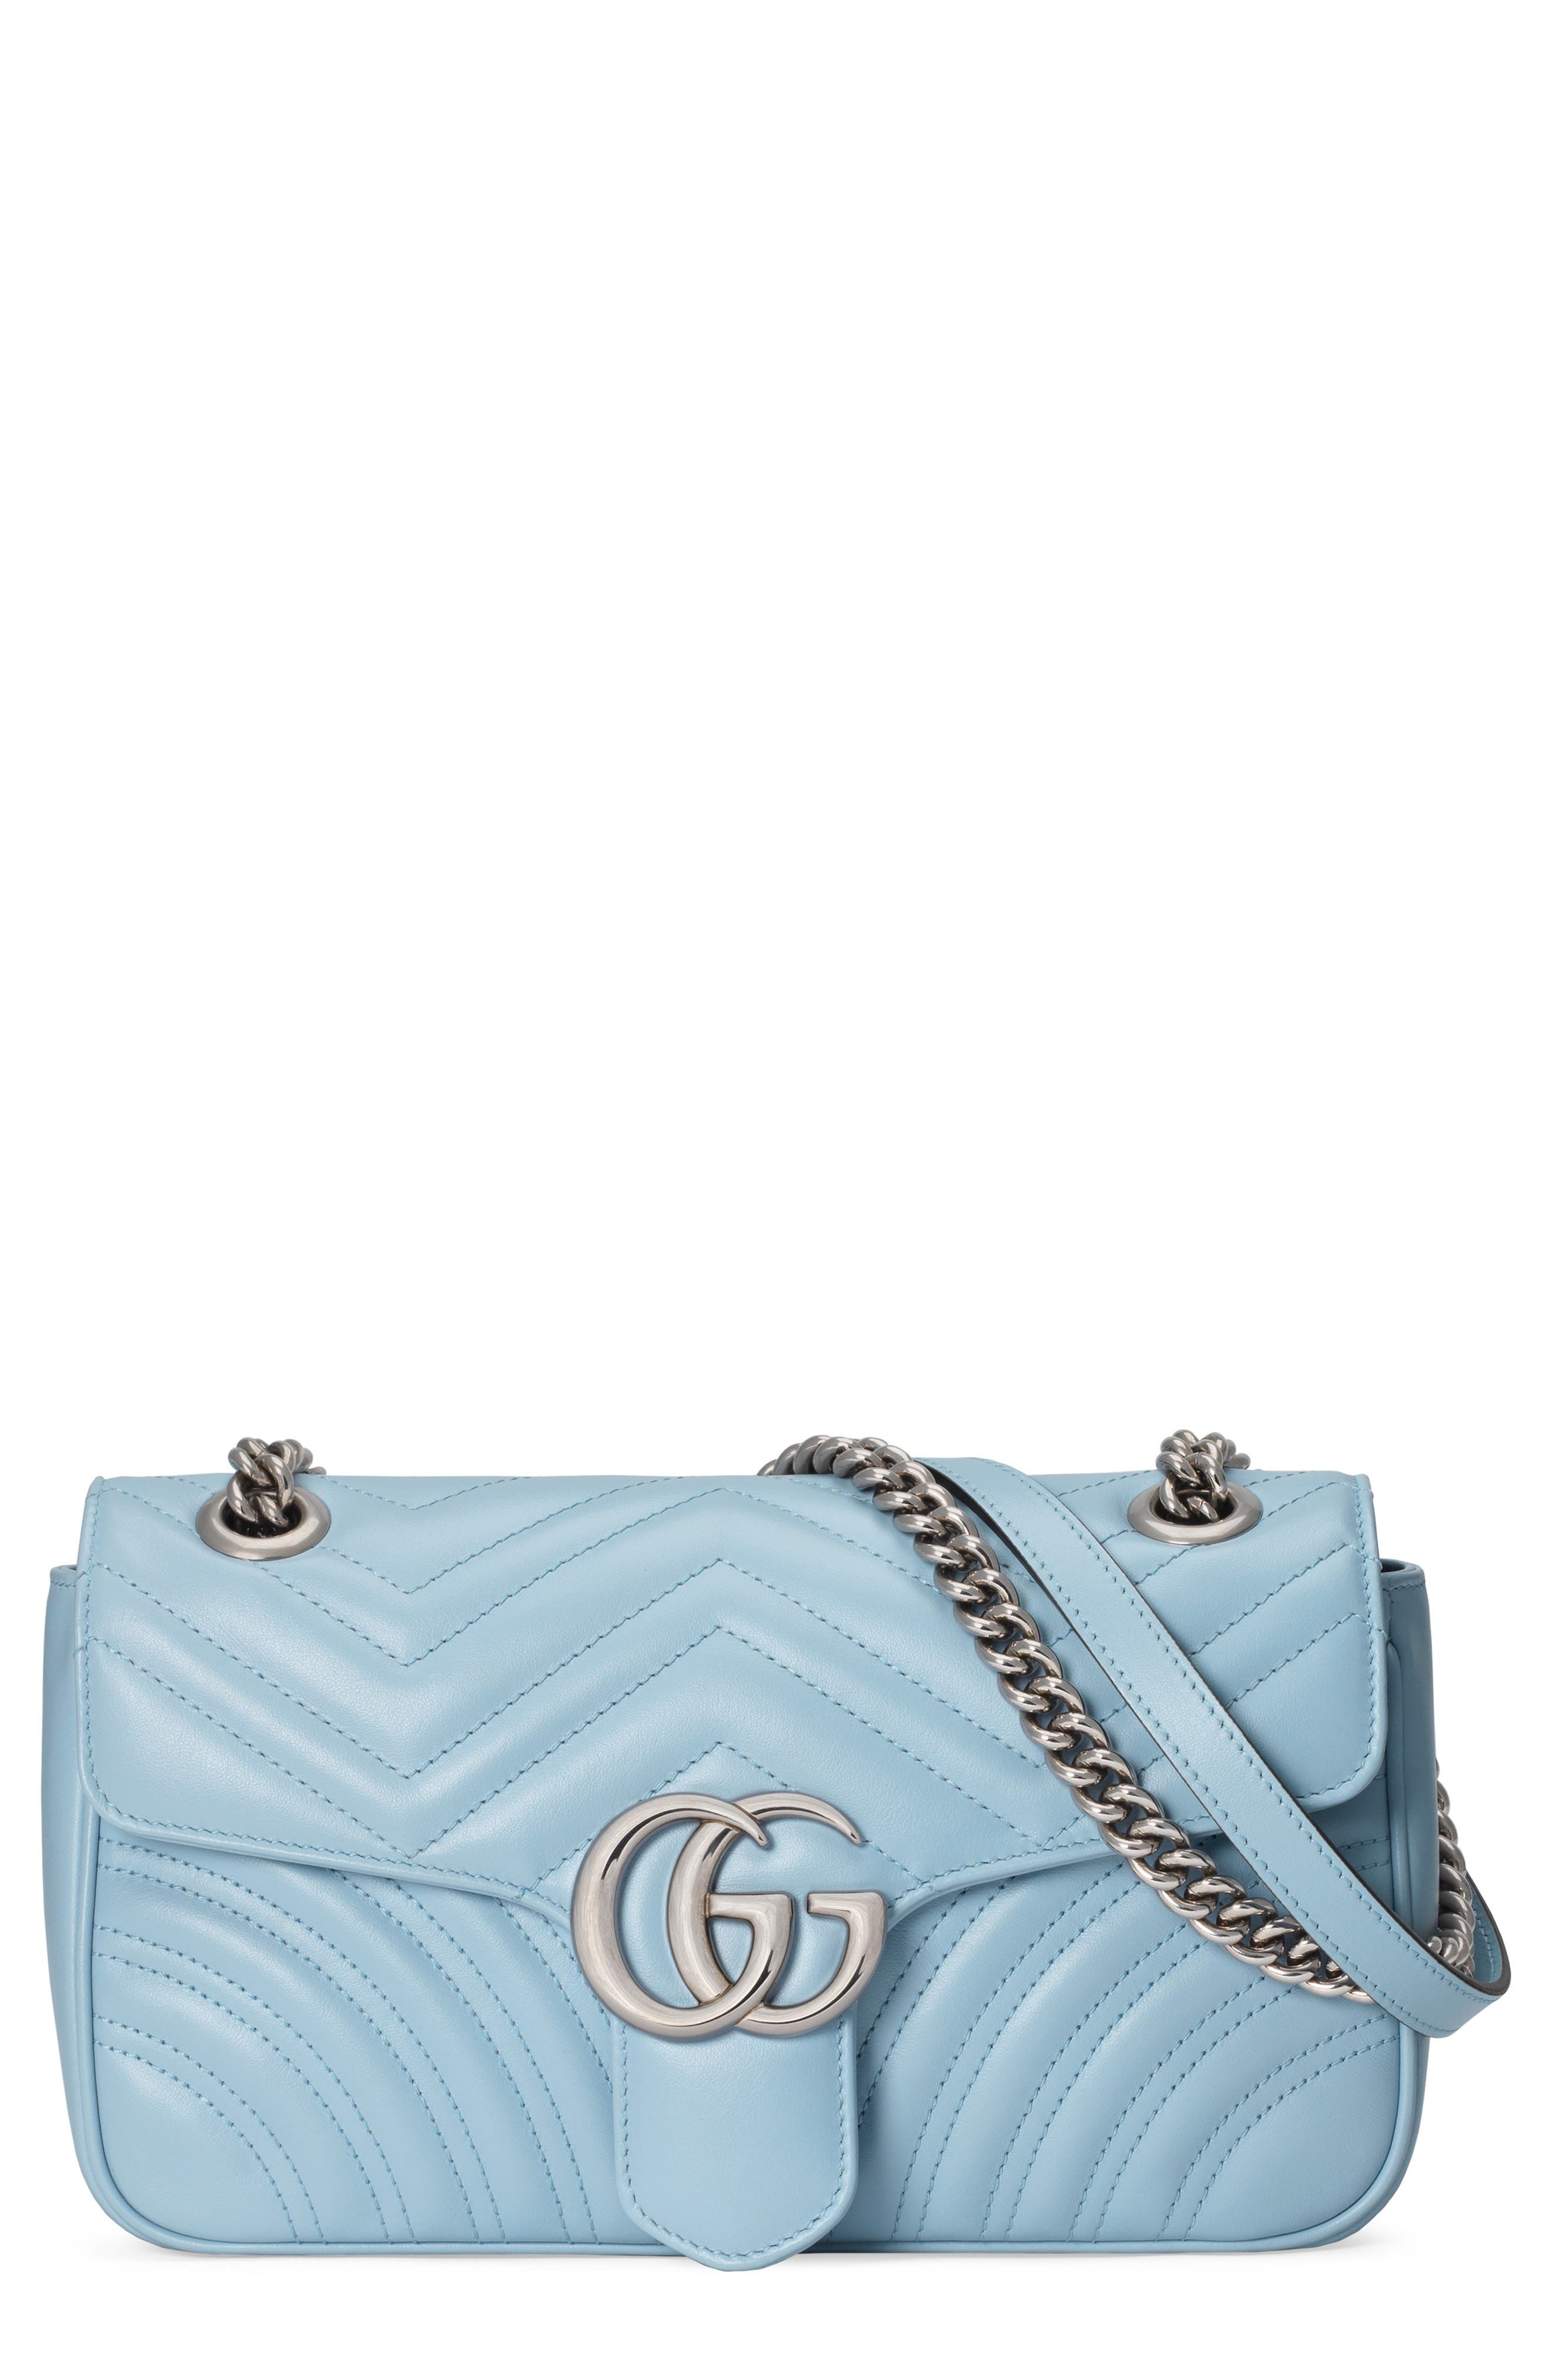 Gucci gives its Marmont bag a charming makeover with dreamy pastel color that plays up the silvertone double-G hardware and dimensional matelasse quilting. A sliding chain-and-leather strap can be doubled or extended as you prefer. Style Name: Gucci Small Gg 2.0 Matelasse Leather Shoulder Bag. Style Number: 6079616. Available in stores.